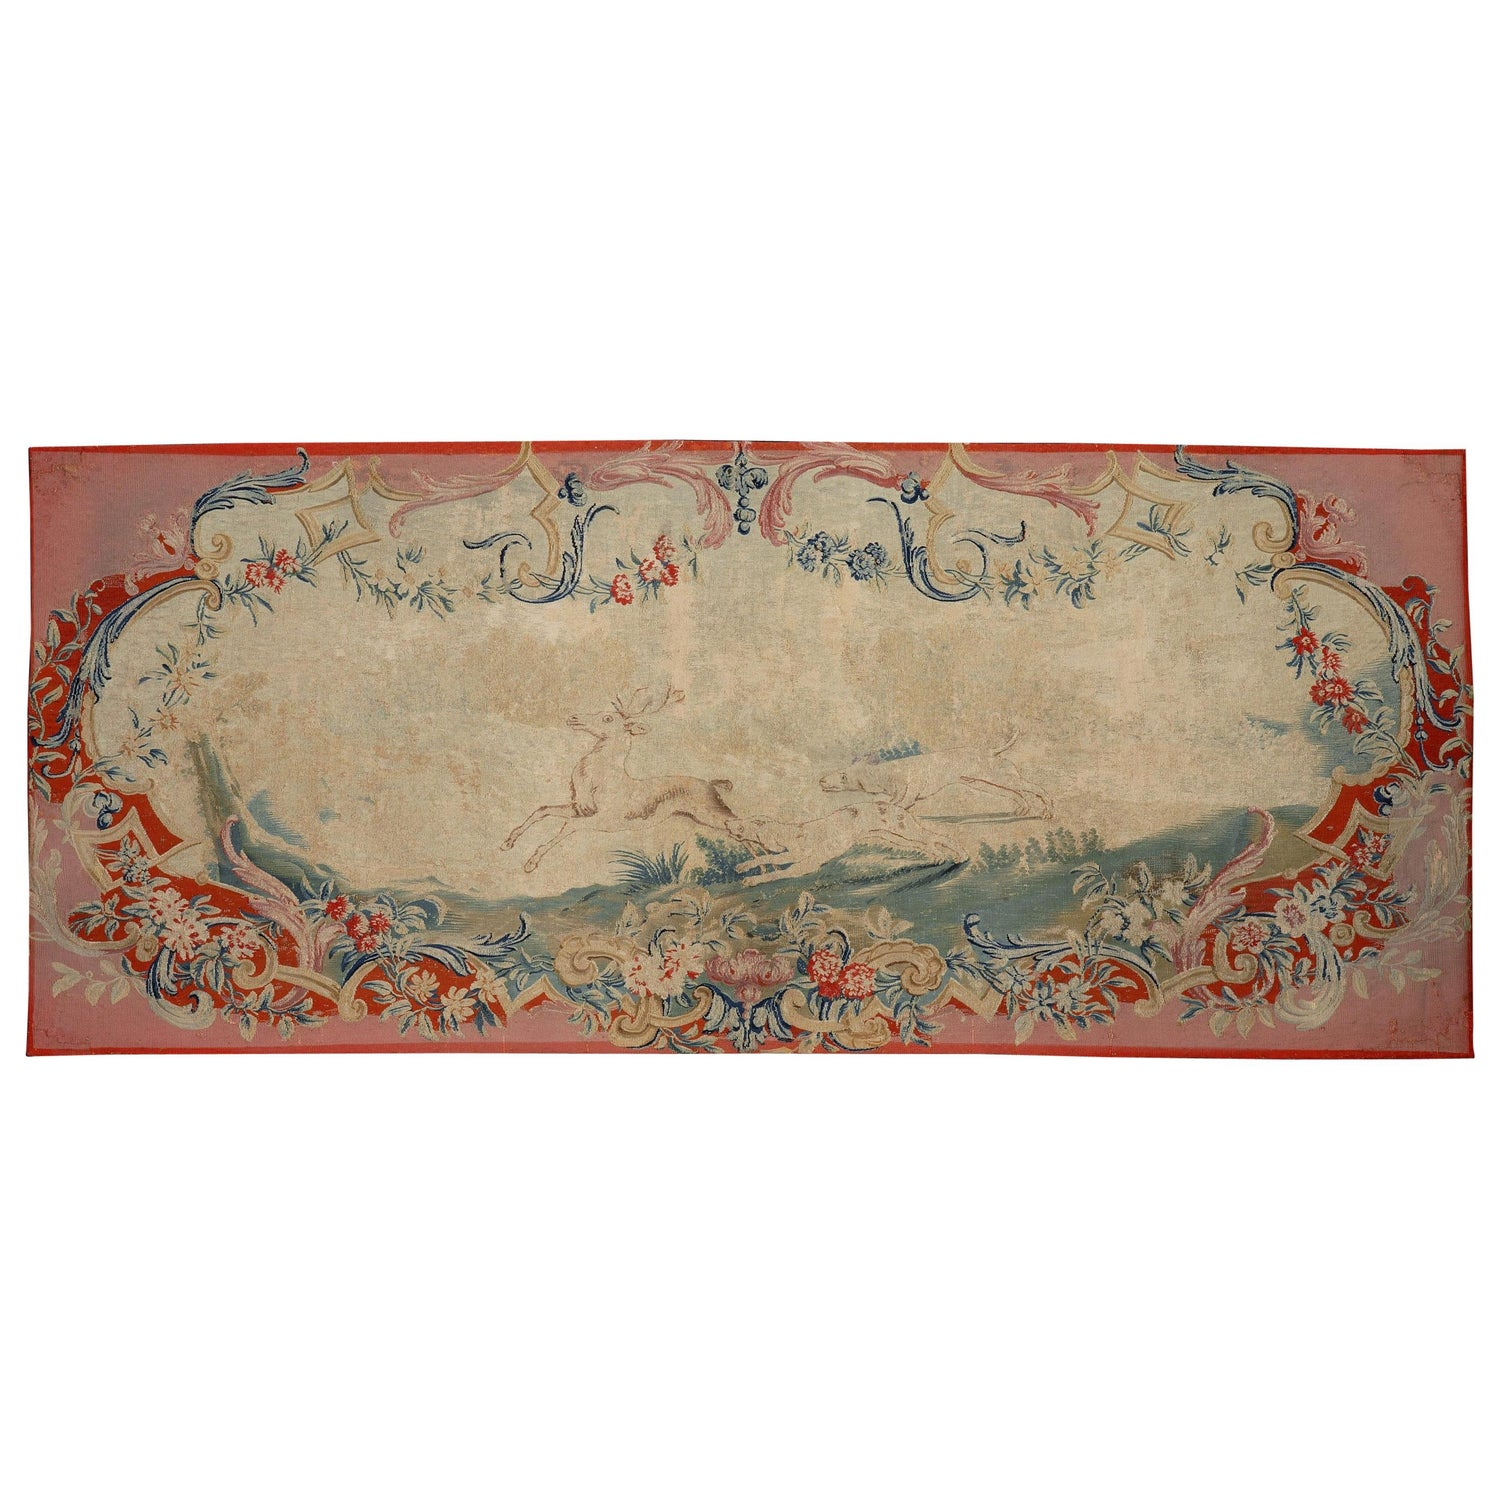 Tapestry Panel, Late 18th Century, French Louis XVI, Aubusson